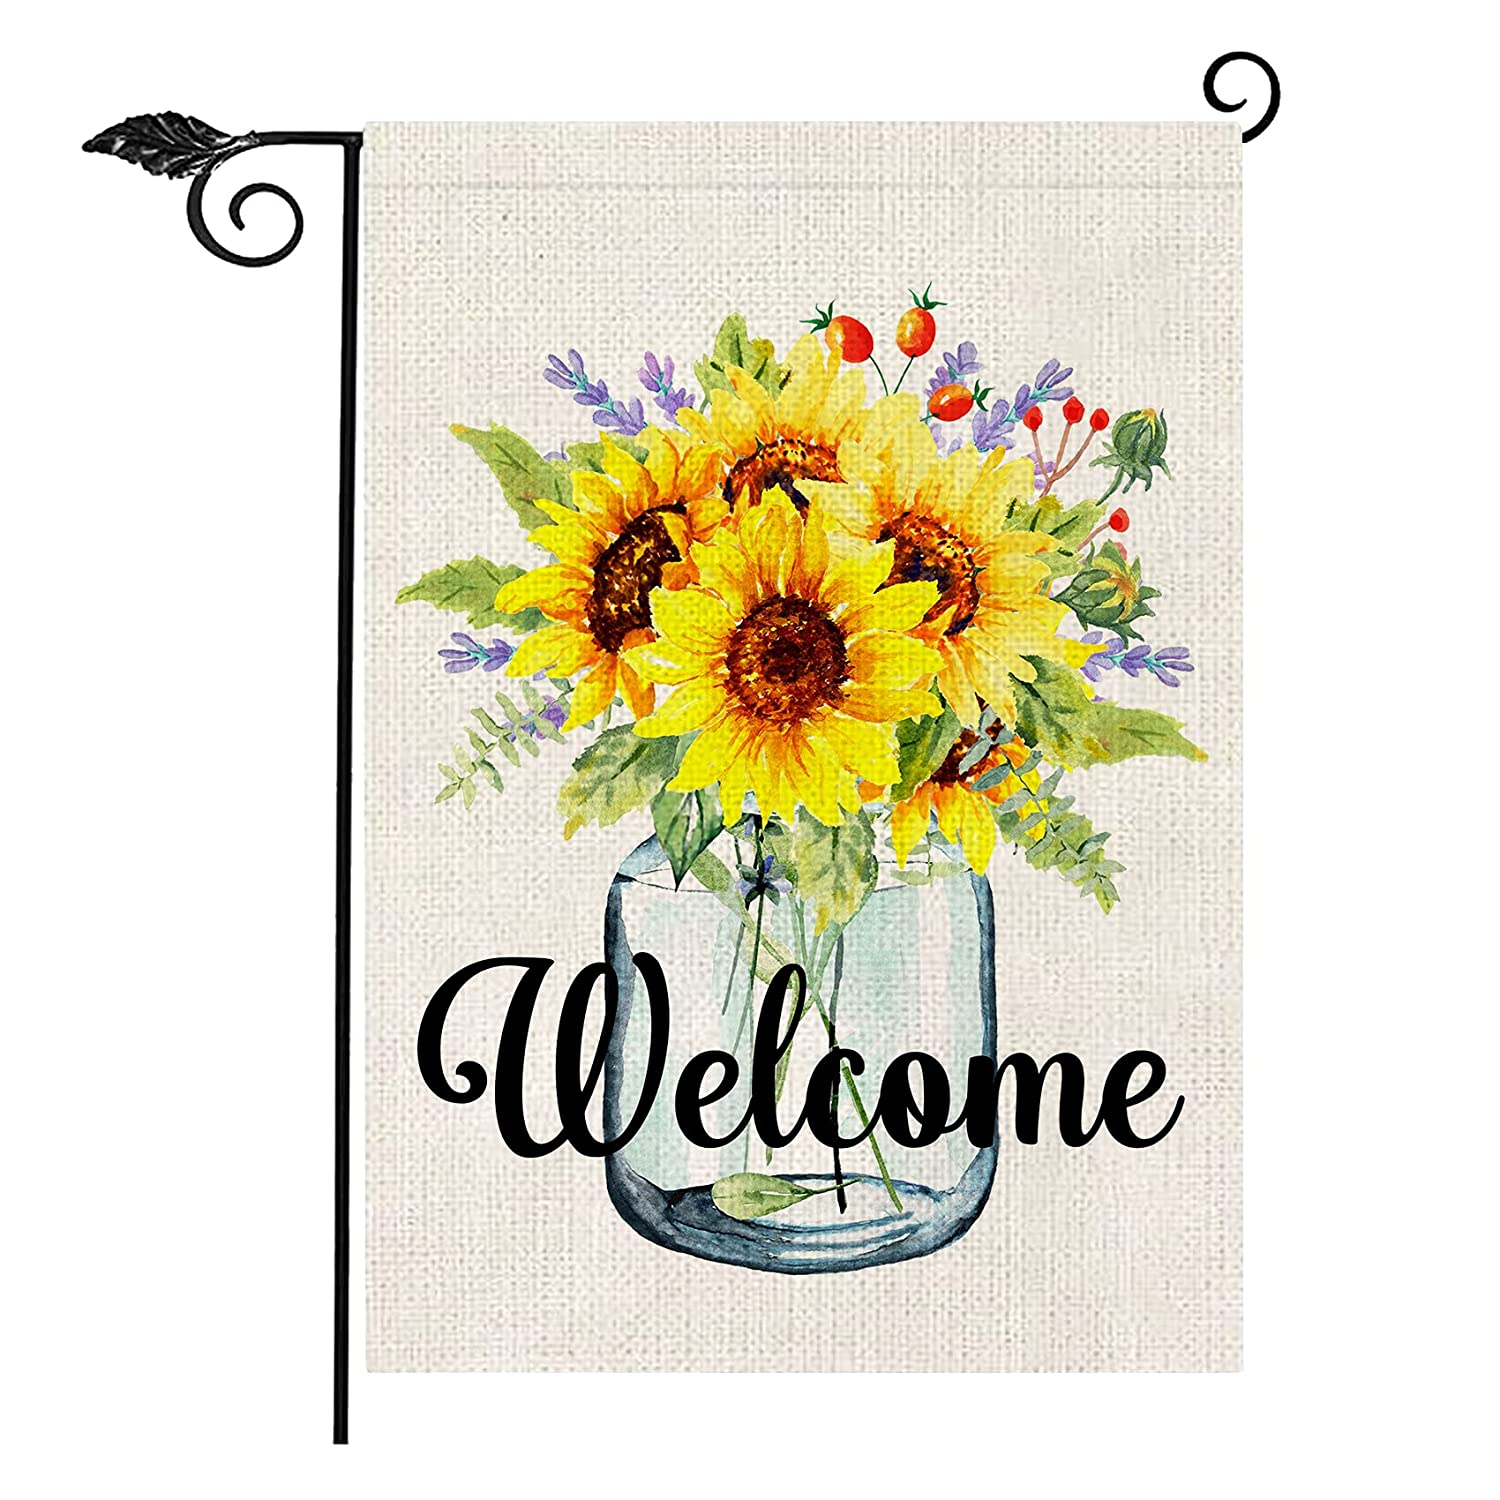 Sunflower Welcome Garden Flag, Double Sided Farmhouse Summer Garden Flag Vertical Garden Flags for Outside Decoration Small Garden Flags 12x18 Prime Yard Signs